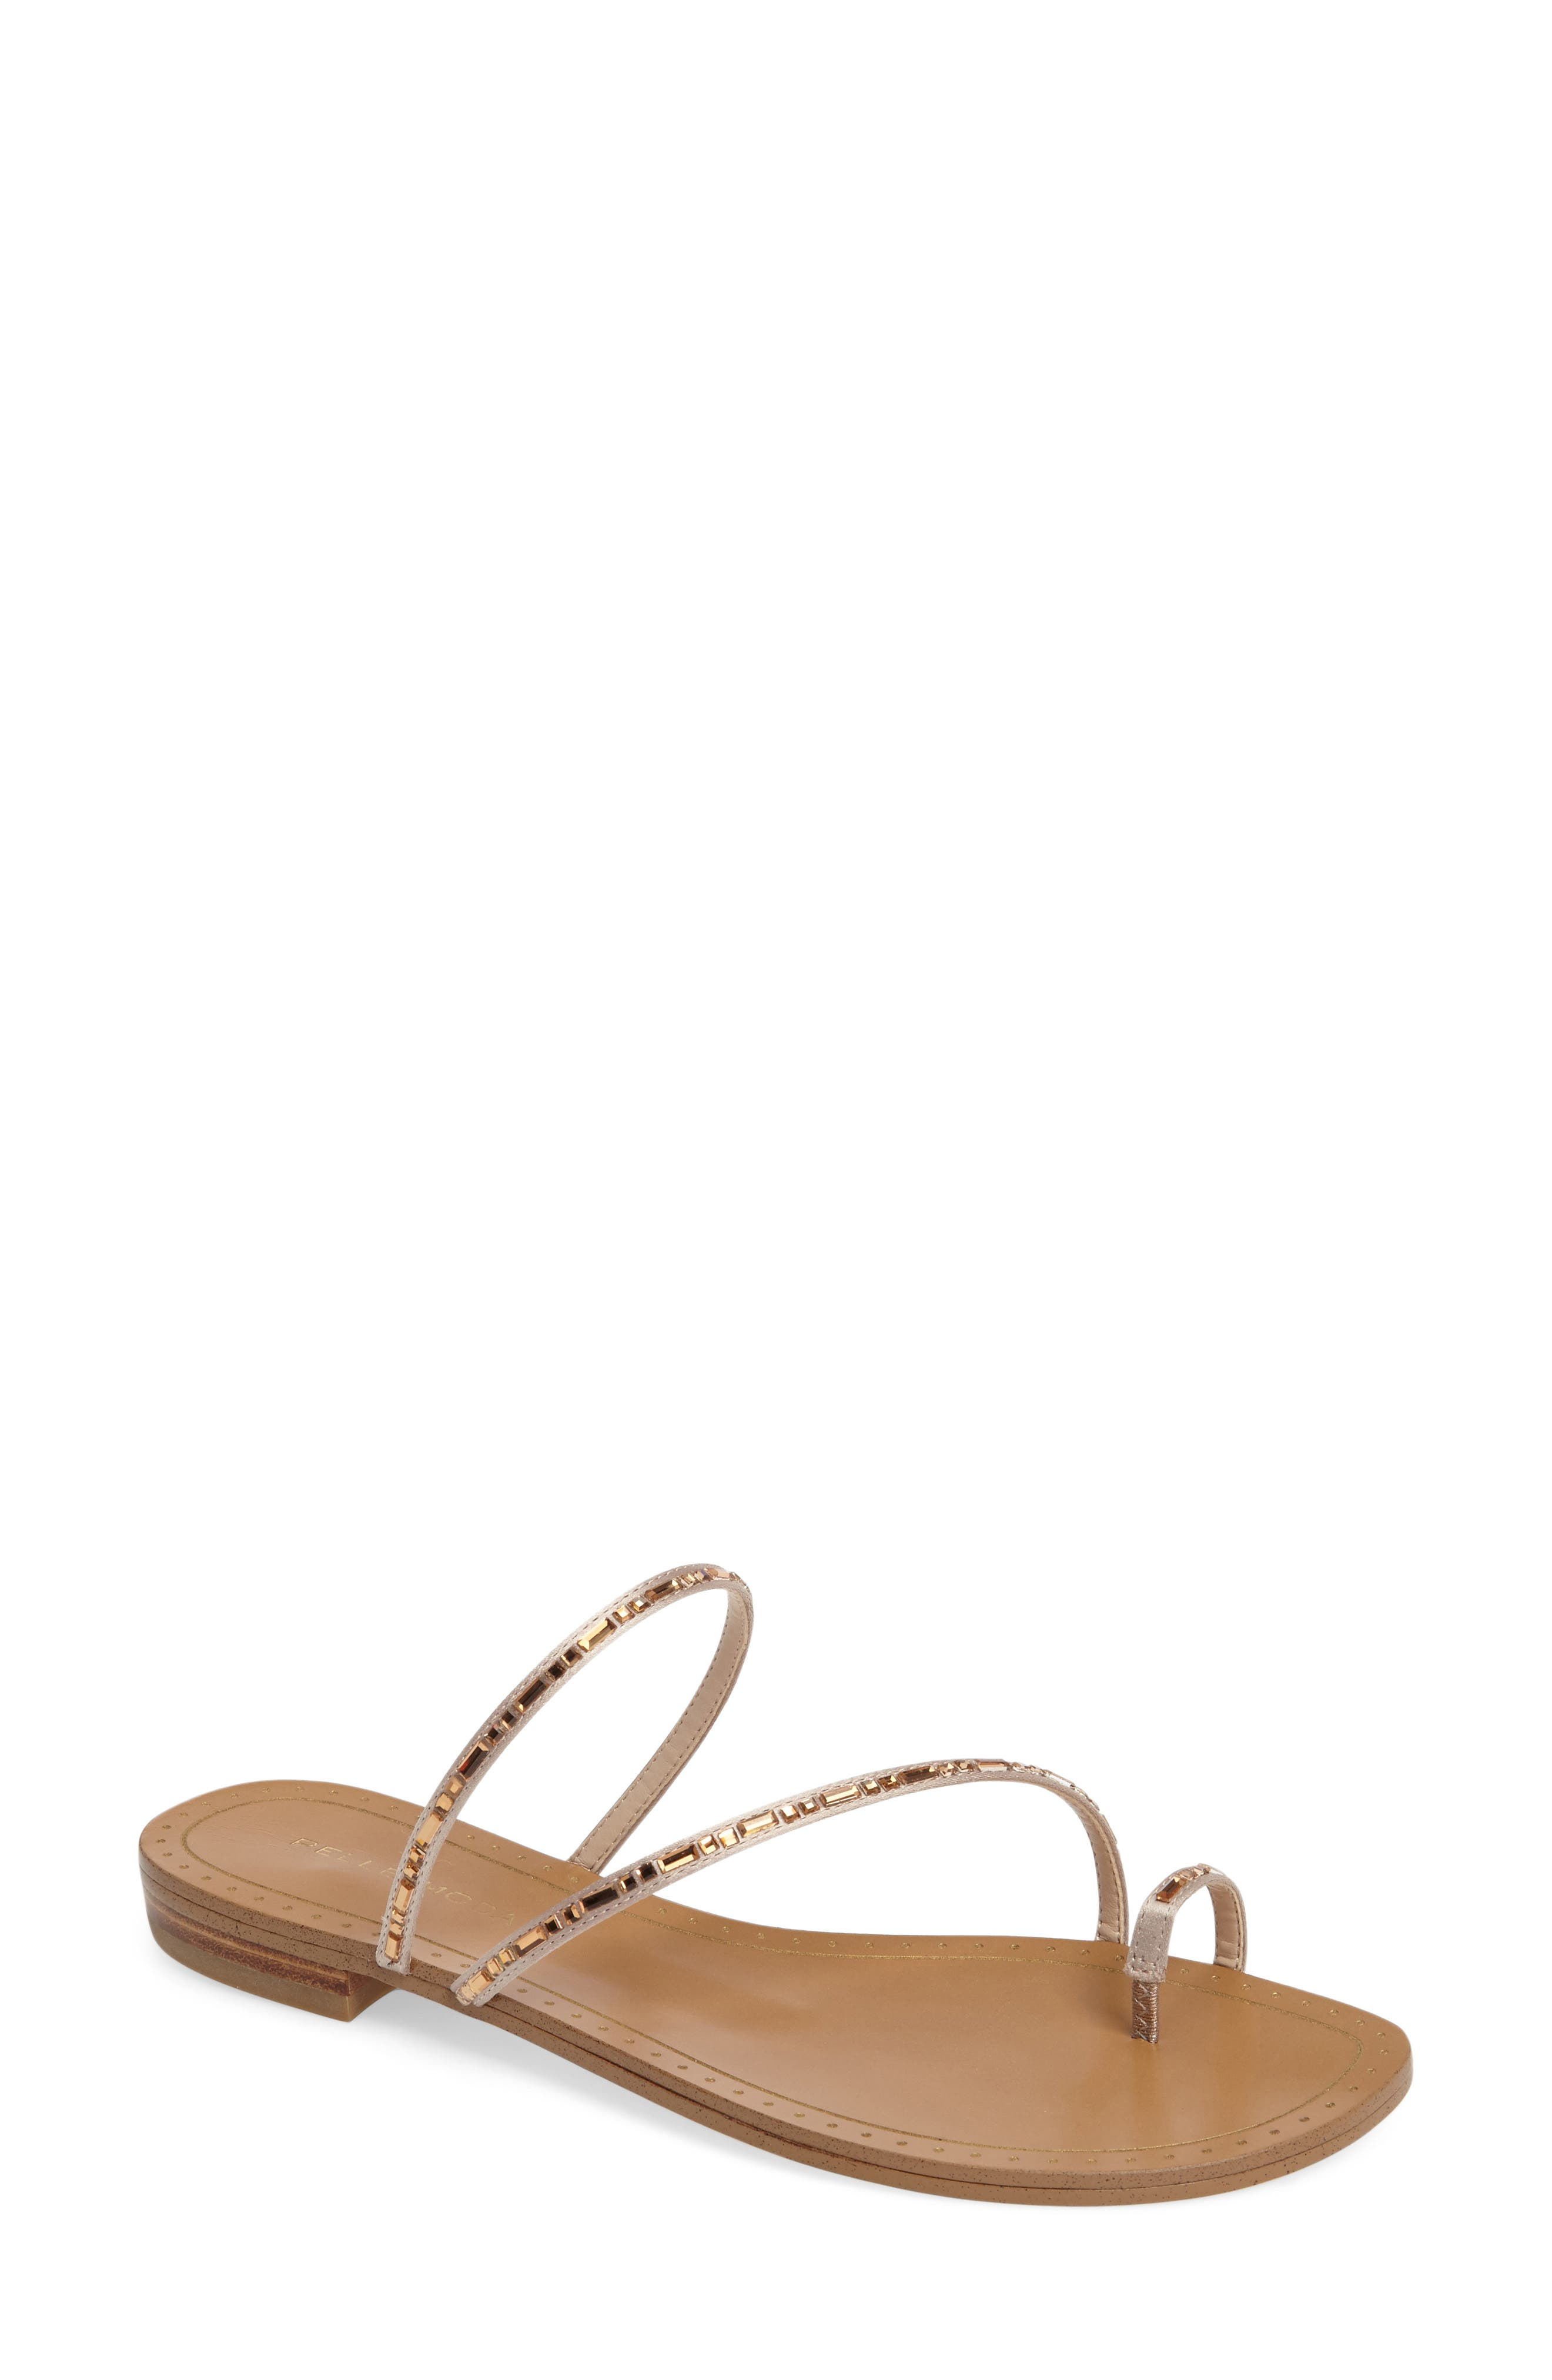 Alternate Image 1 Selected - Pelle Moda Bohem Embellished Sandal (Women)